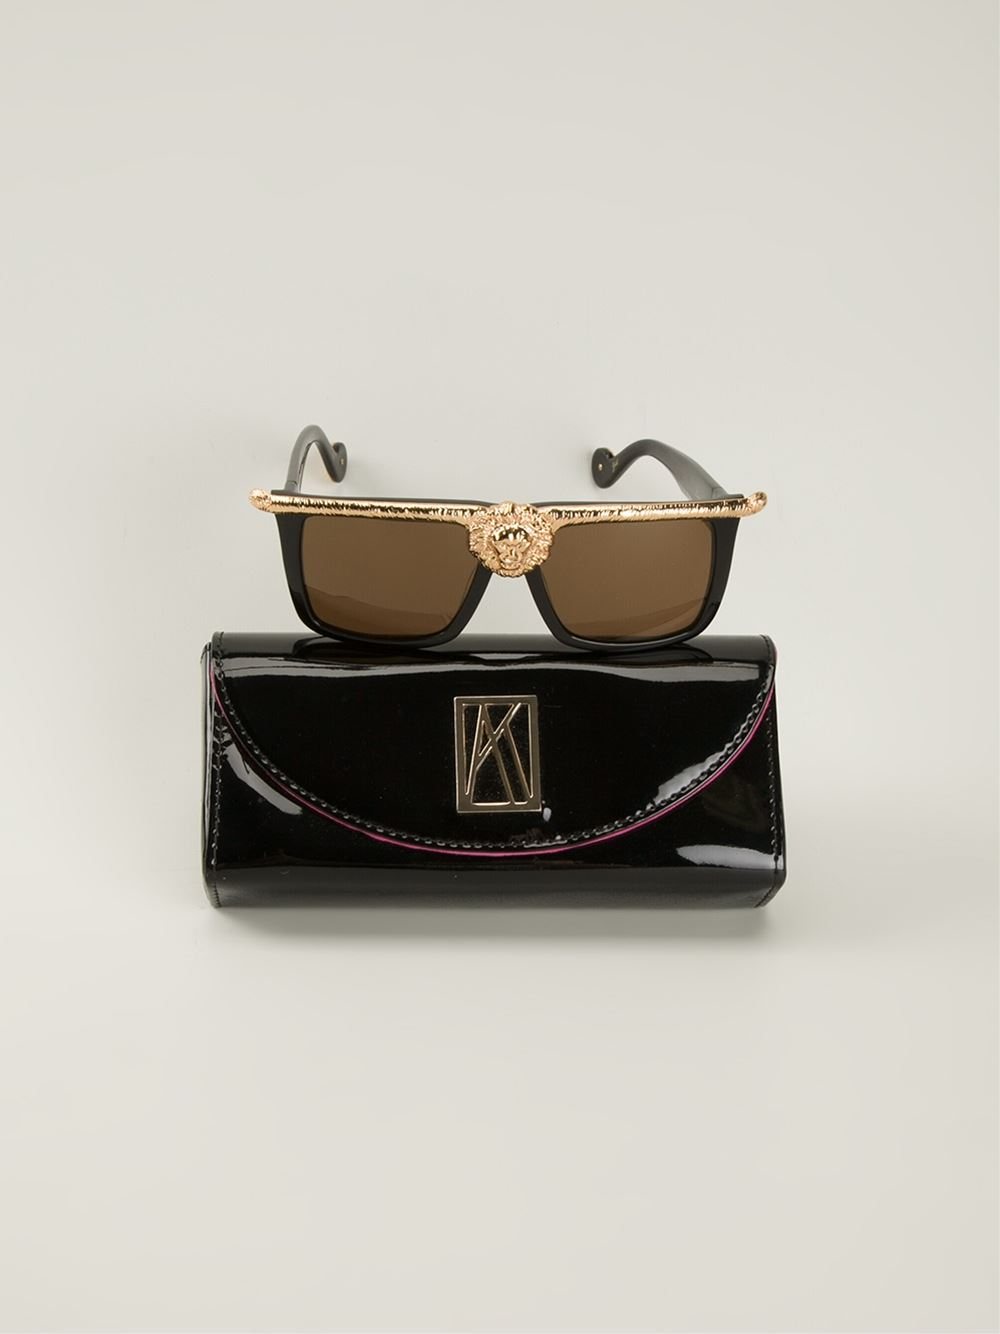 1ff59761b4e Lyst - Anna Karin Karlsson  The Lioness  Sunglasses in Black